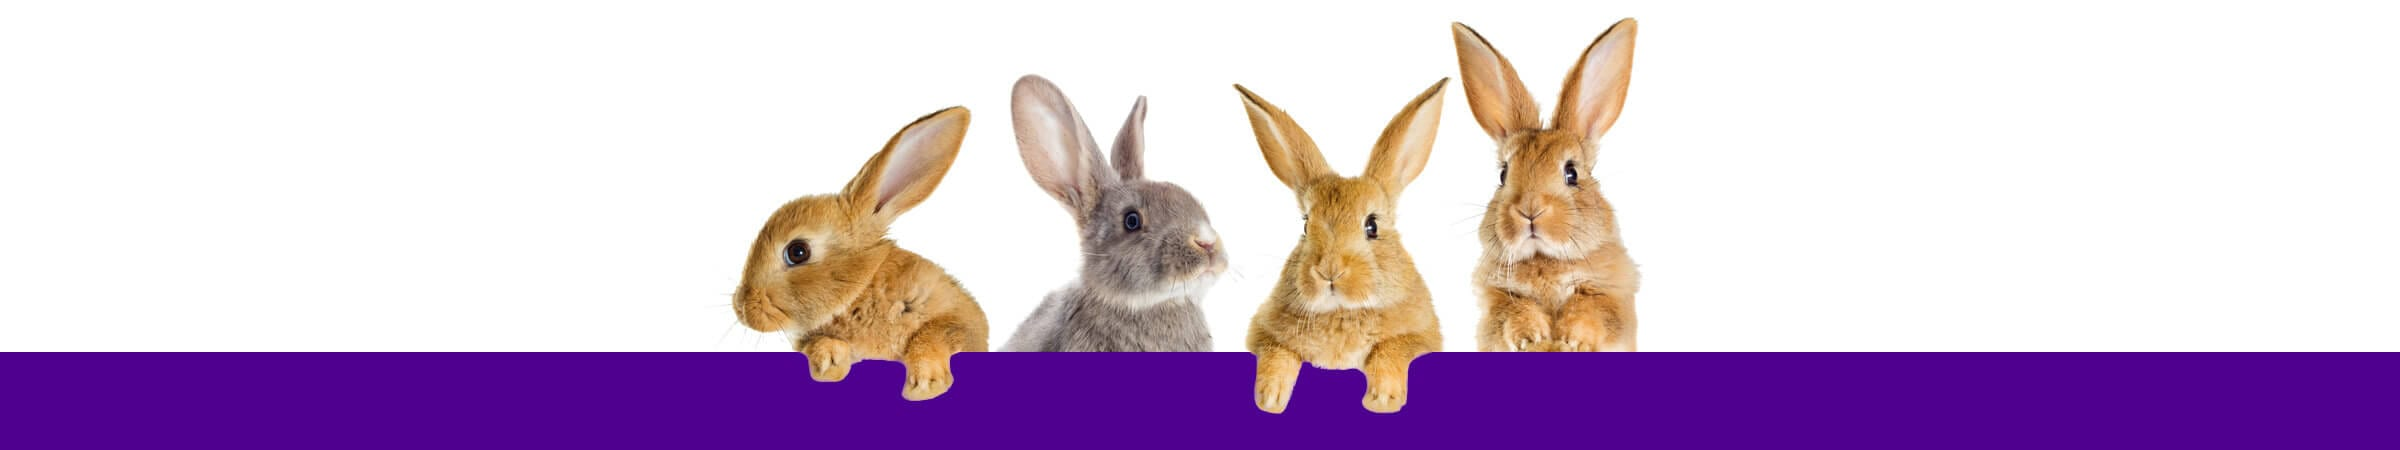 Rabbits and Guinea Pigs on the Lapin Luxury online pet store footer